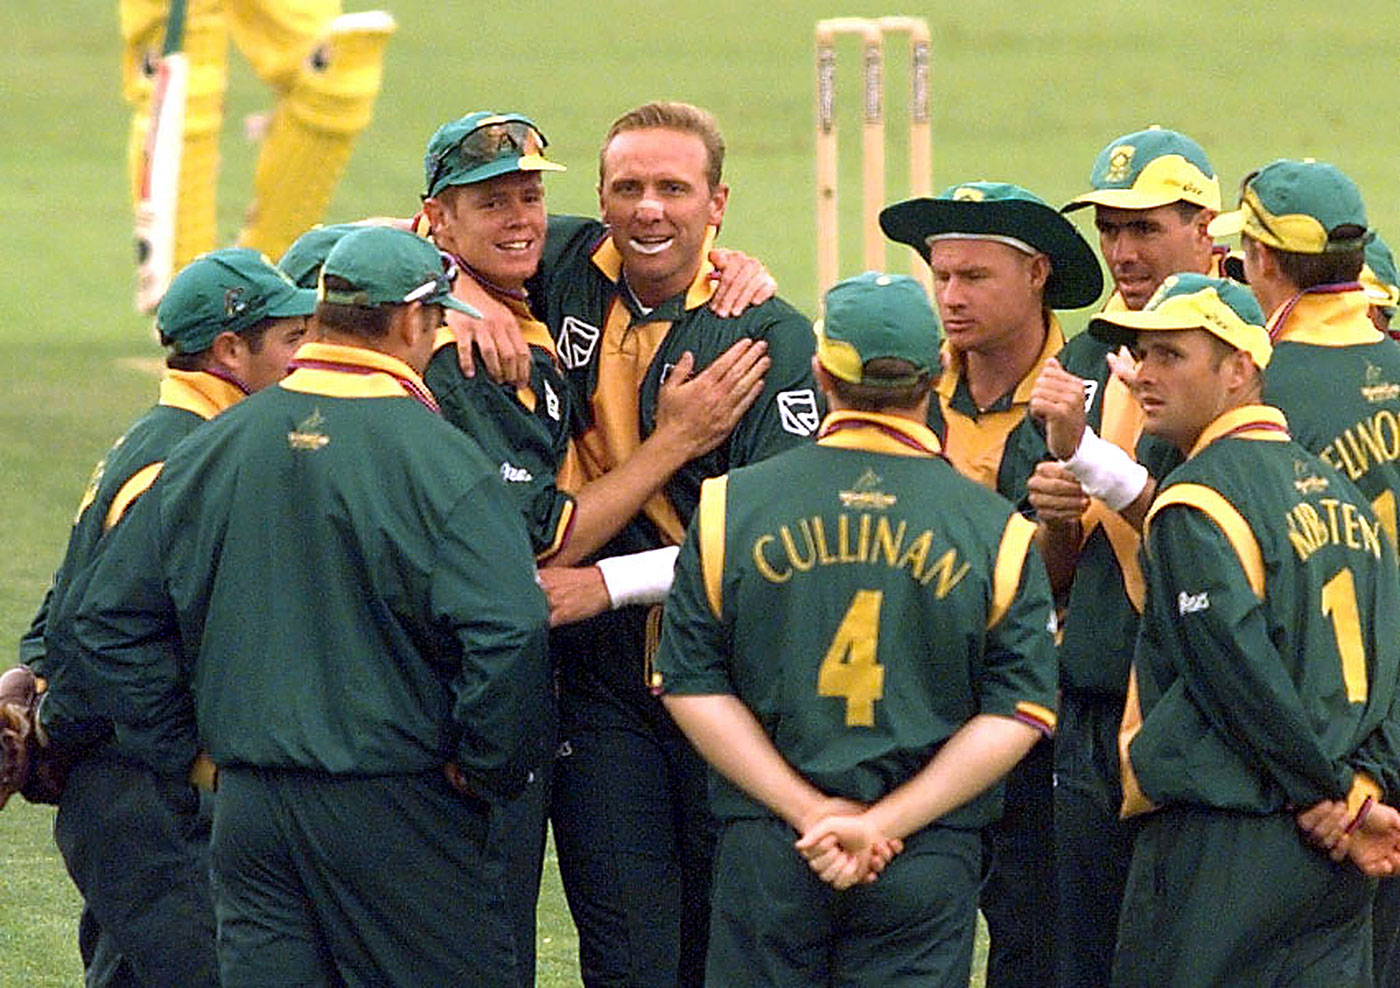 Nine and no joy: Allan Donald and Shaun Pollock accounted for all but one of Australia's wickets, restricting them to 213